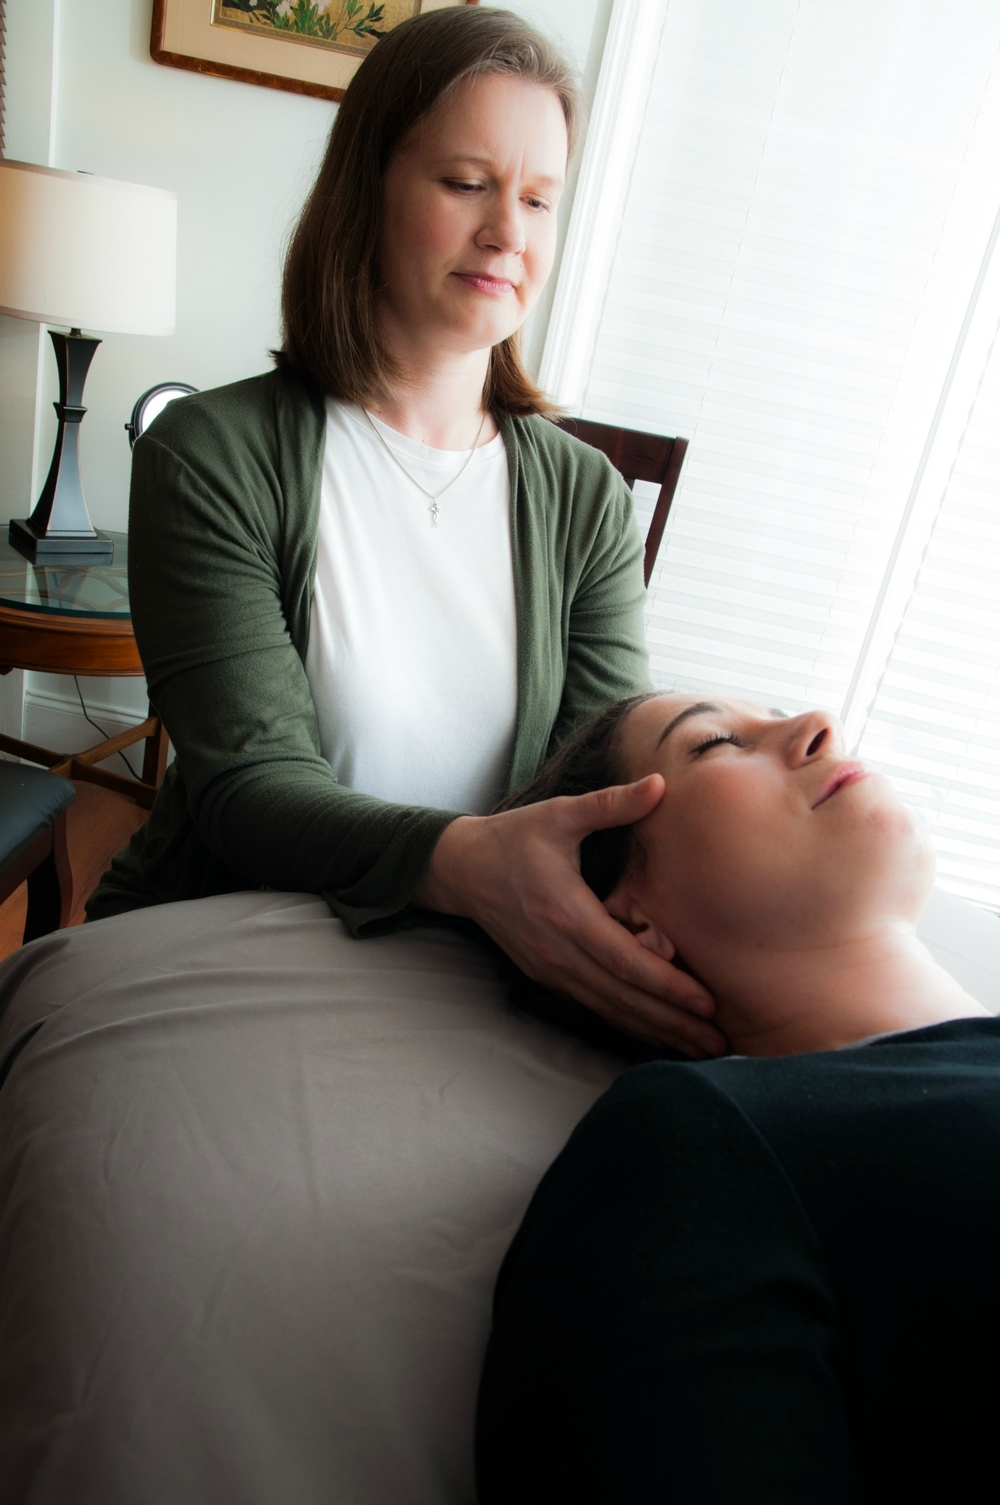 Maija Salins, LMT, CST-D, of Wise Bodymind, works with a client in her CranioSacral Therapy practice in metro Atlanta, Georgia.